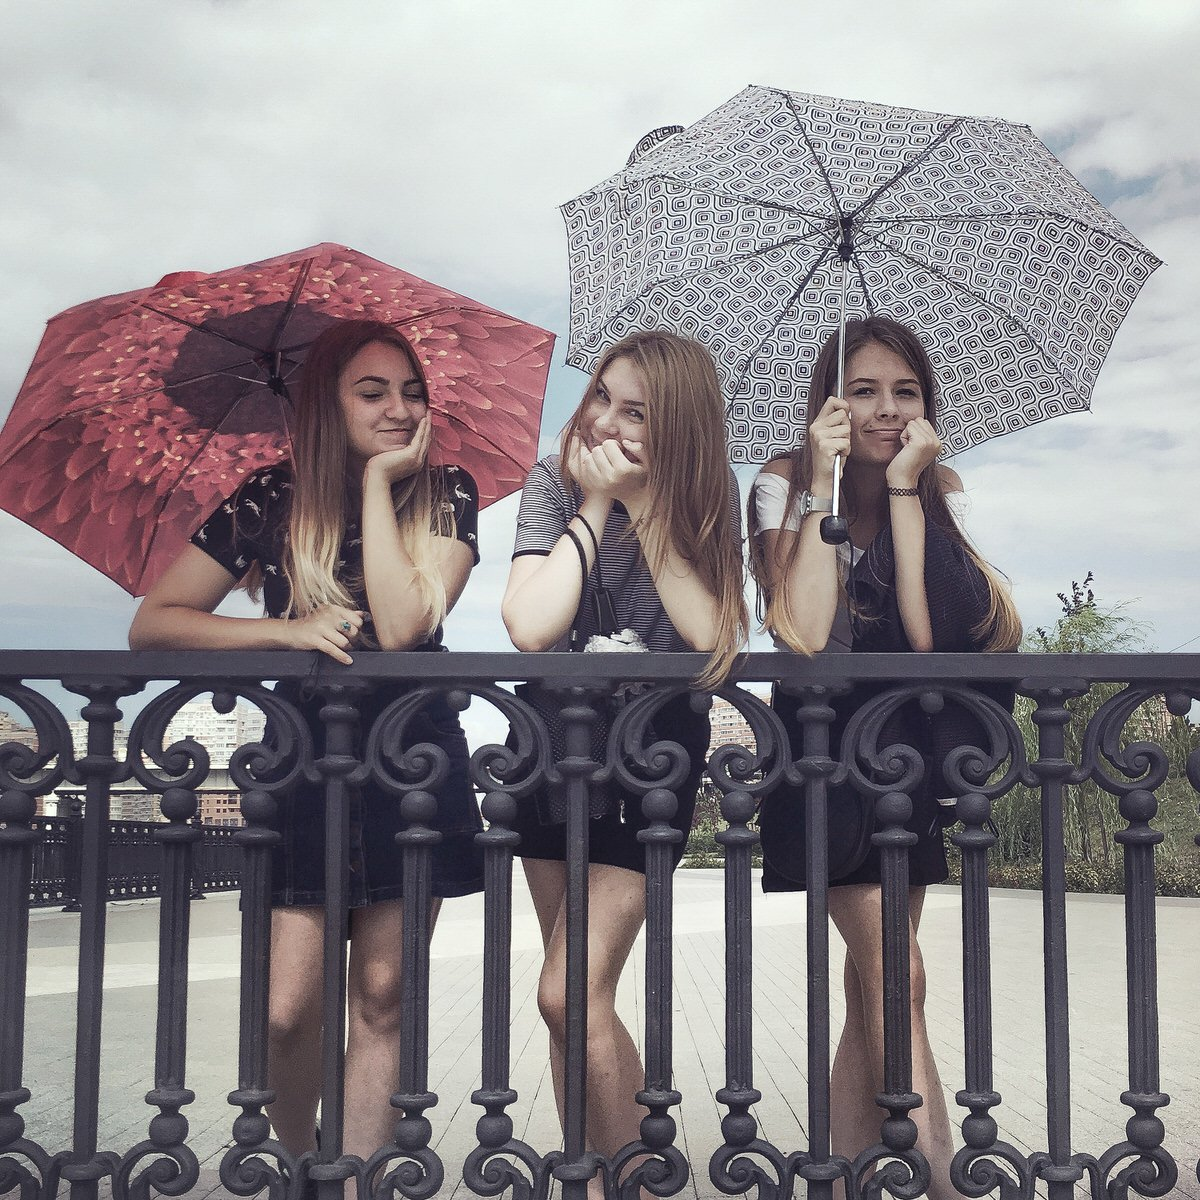 Girls in the summertime in Krasnodar by Dmitry Markov.